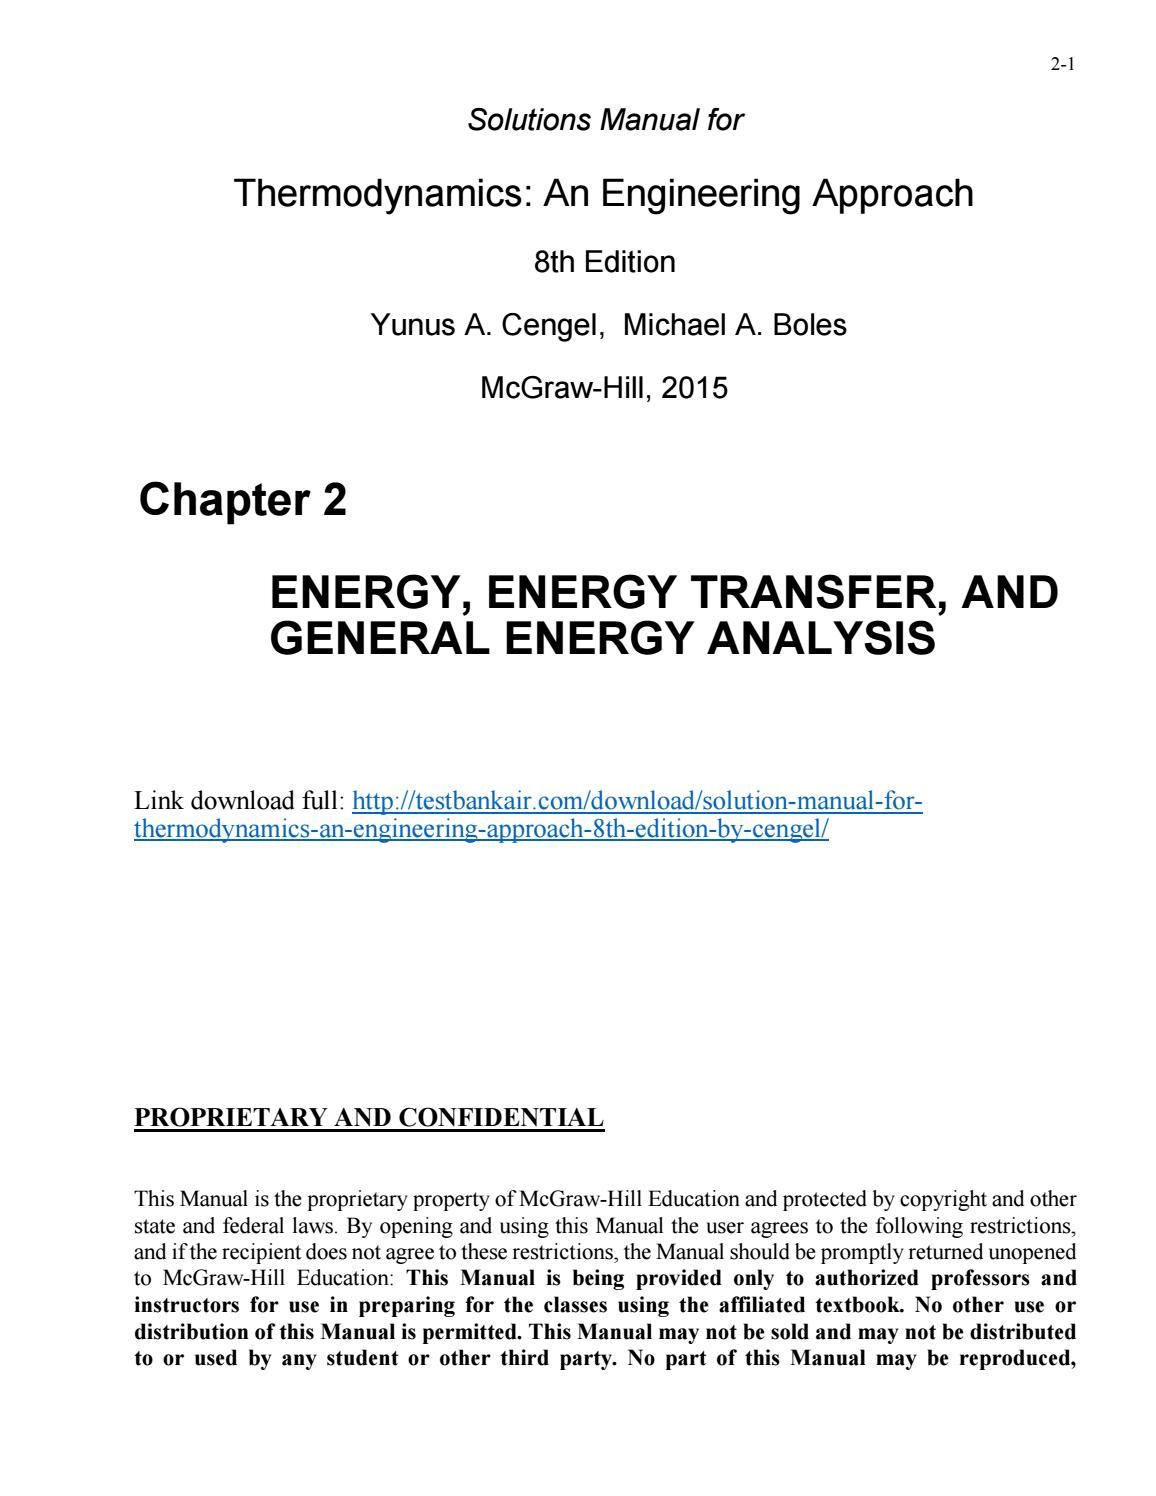 Thermodynamics An Engineering Approach 8th Edition Pdf Free Download